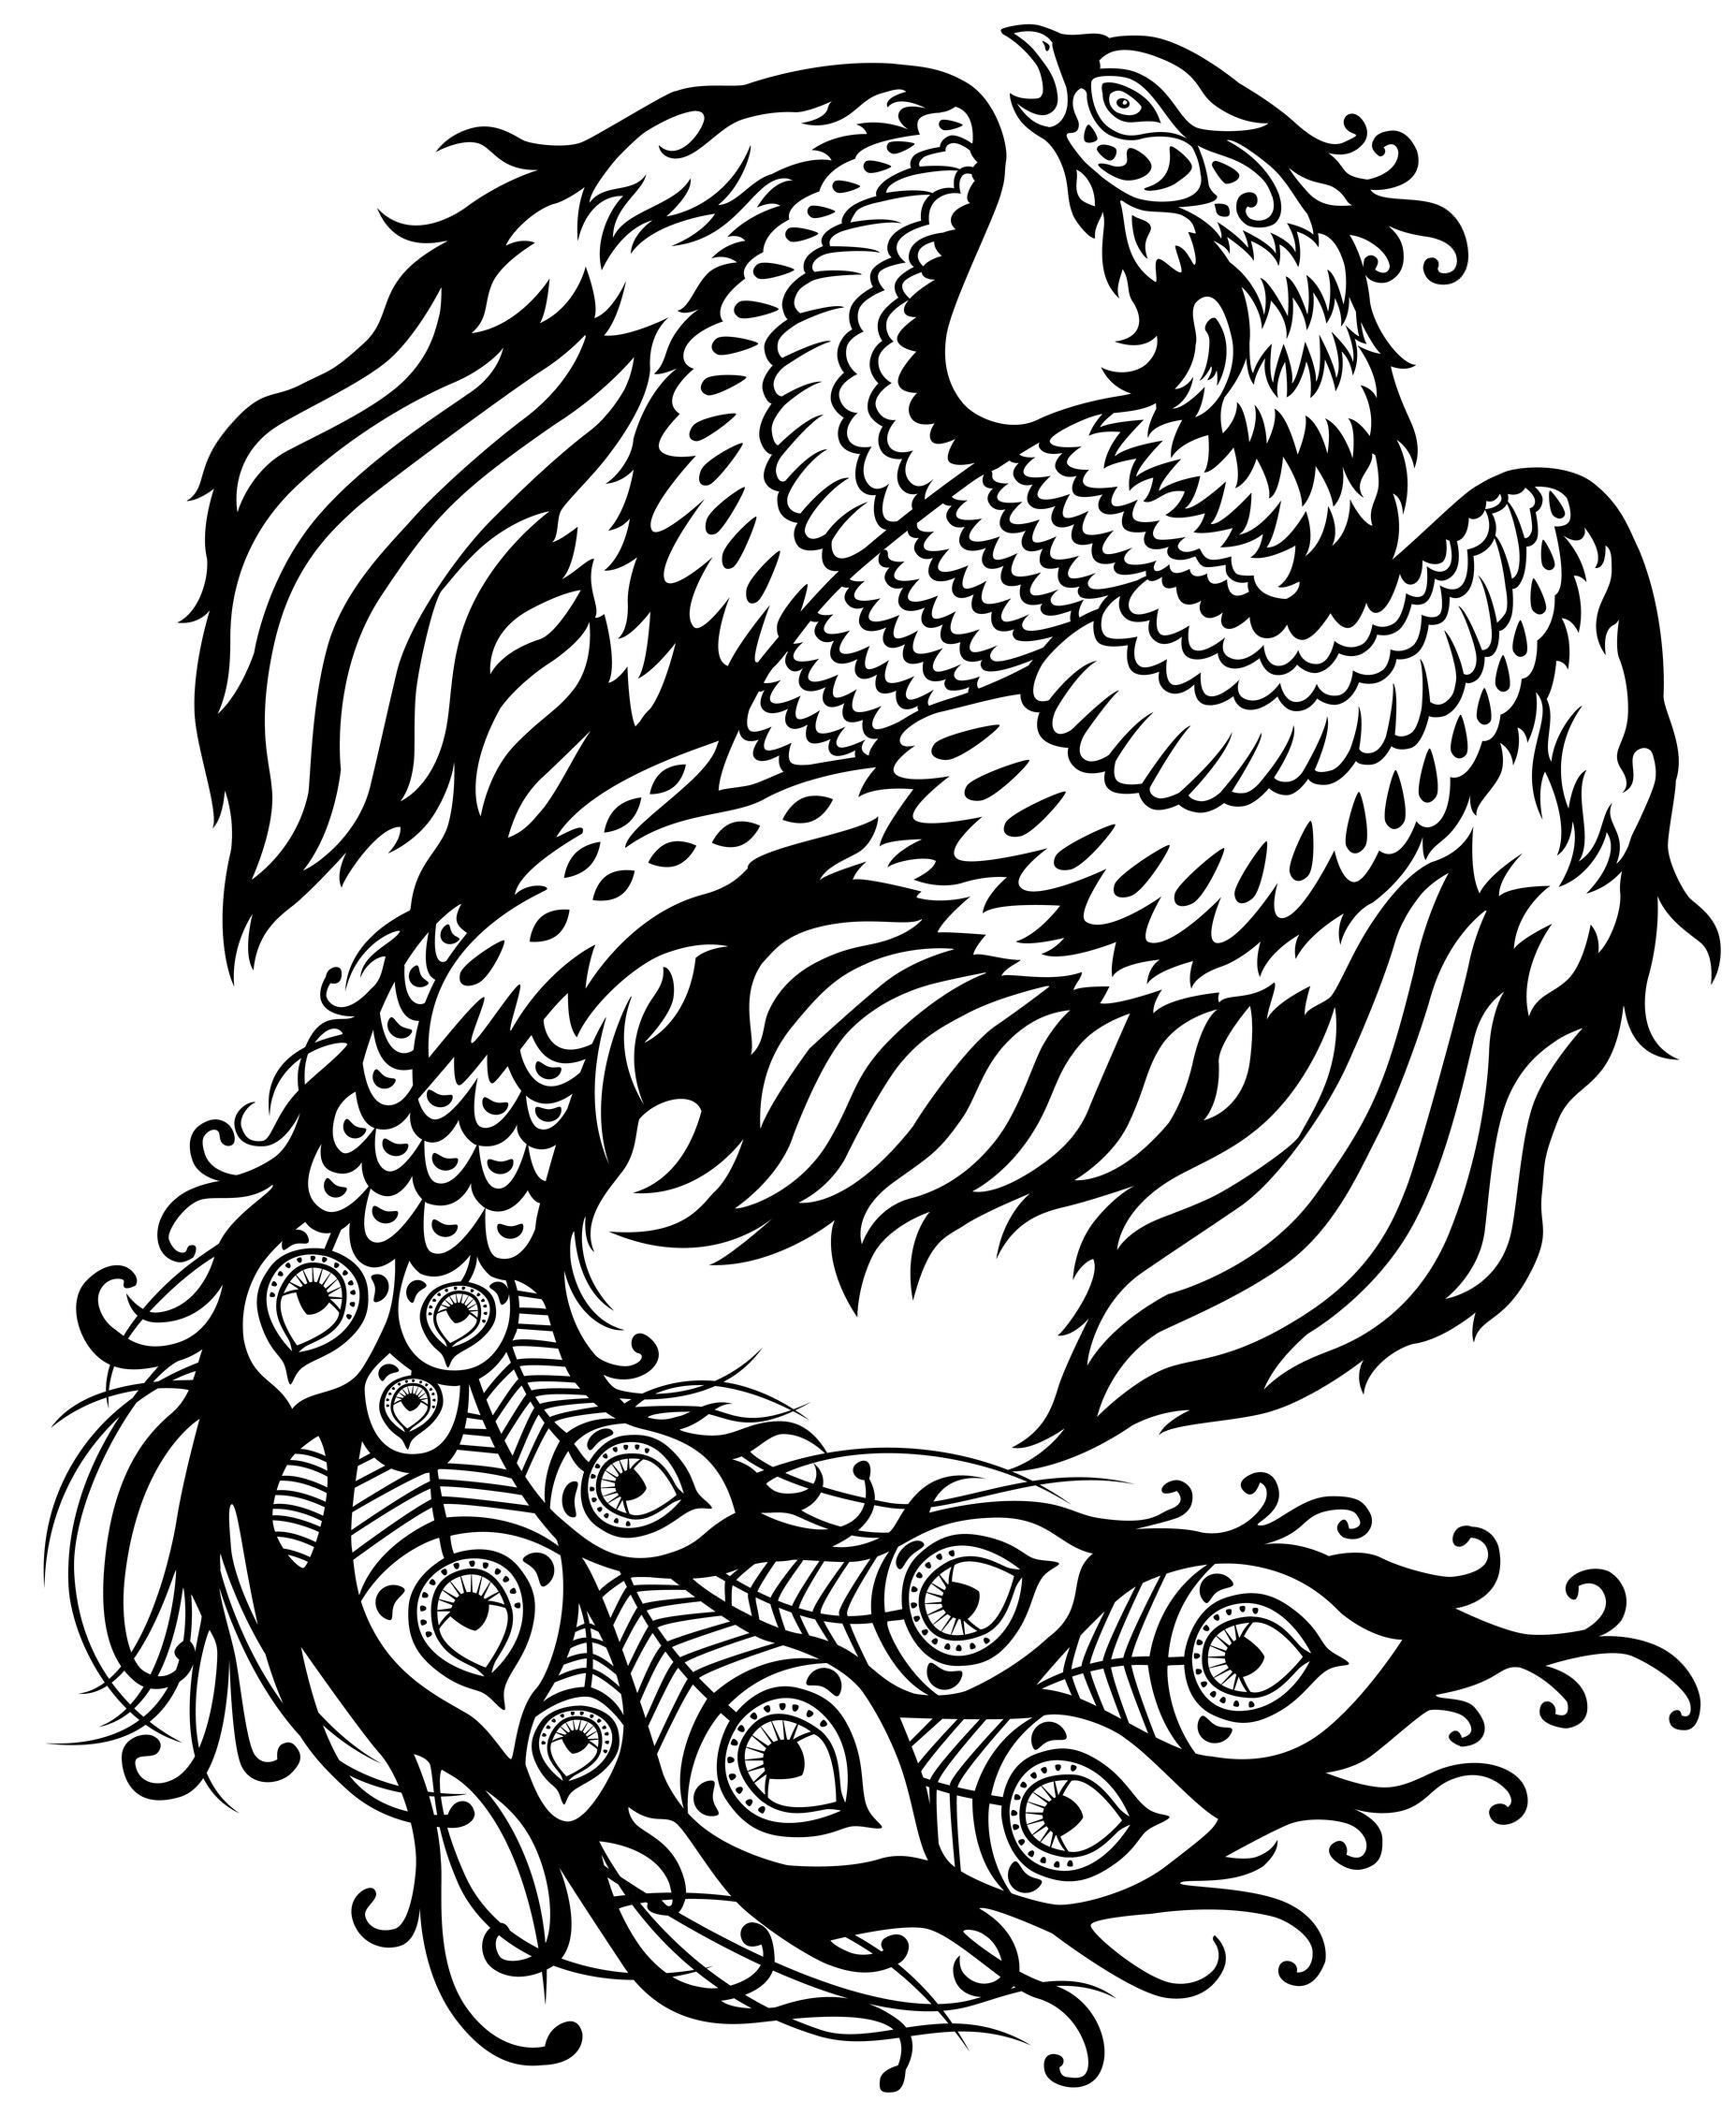 coloriage phoenix dessin noir et blanc tatouage. Black Bedroom Furniture Sets. Home Design Ideas